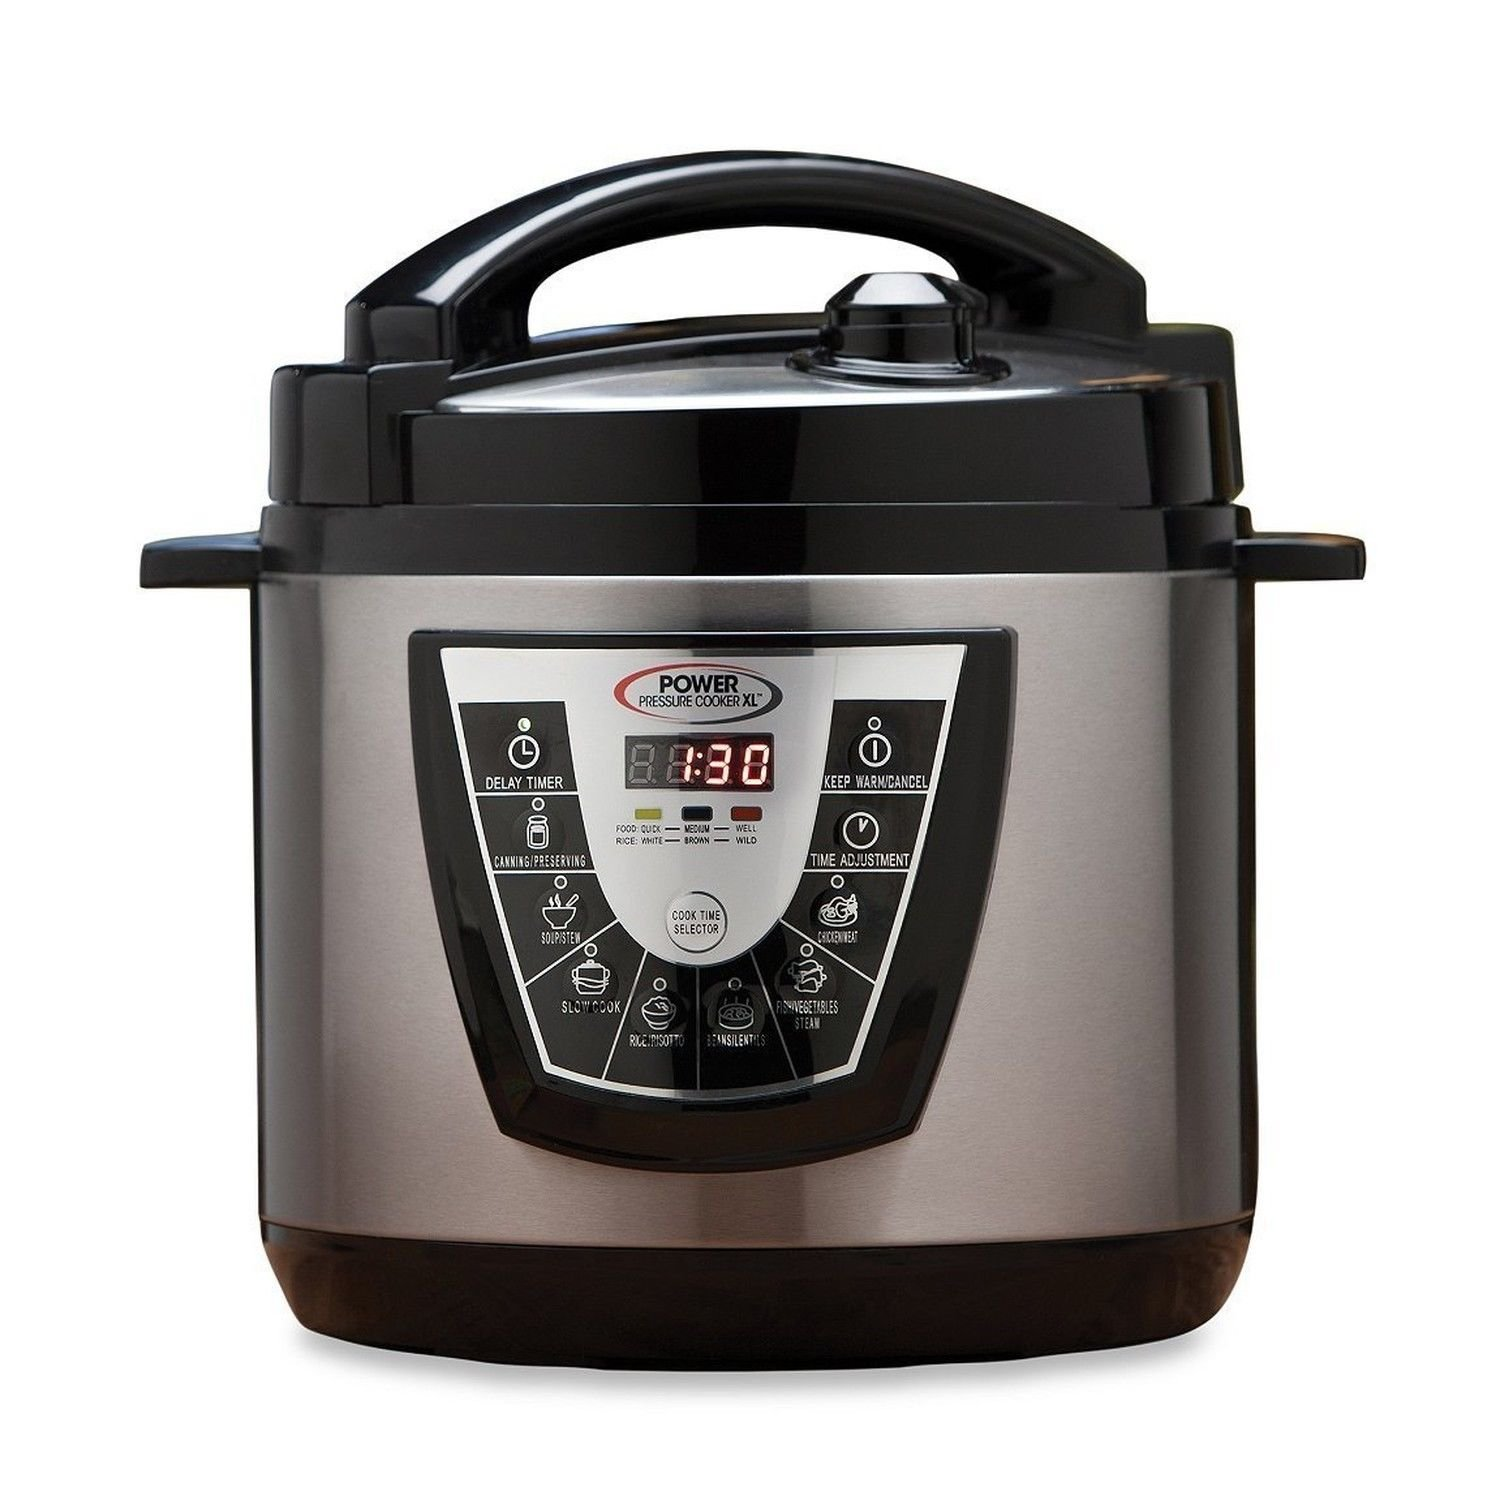 Amazon: Power Pressure Cooker Xl 6 Quart  Silver: Kitchen & Dining